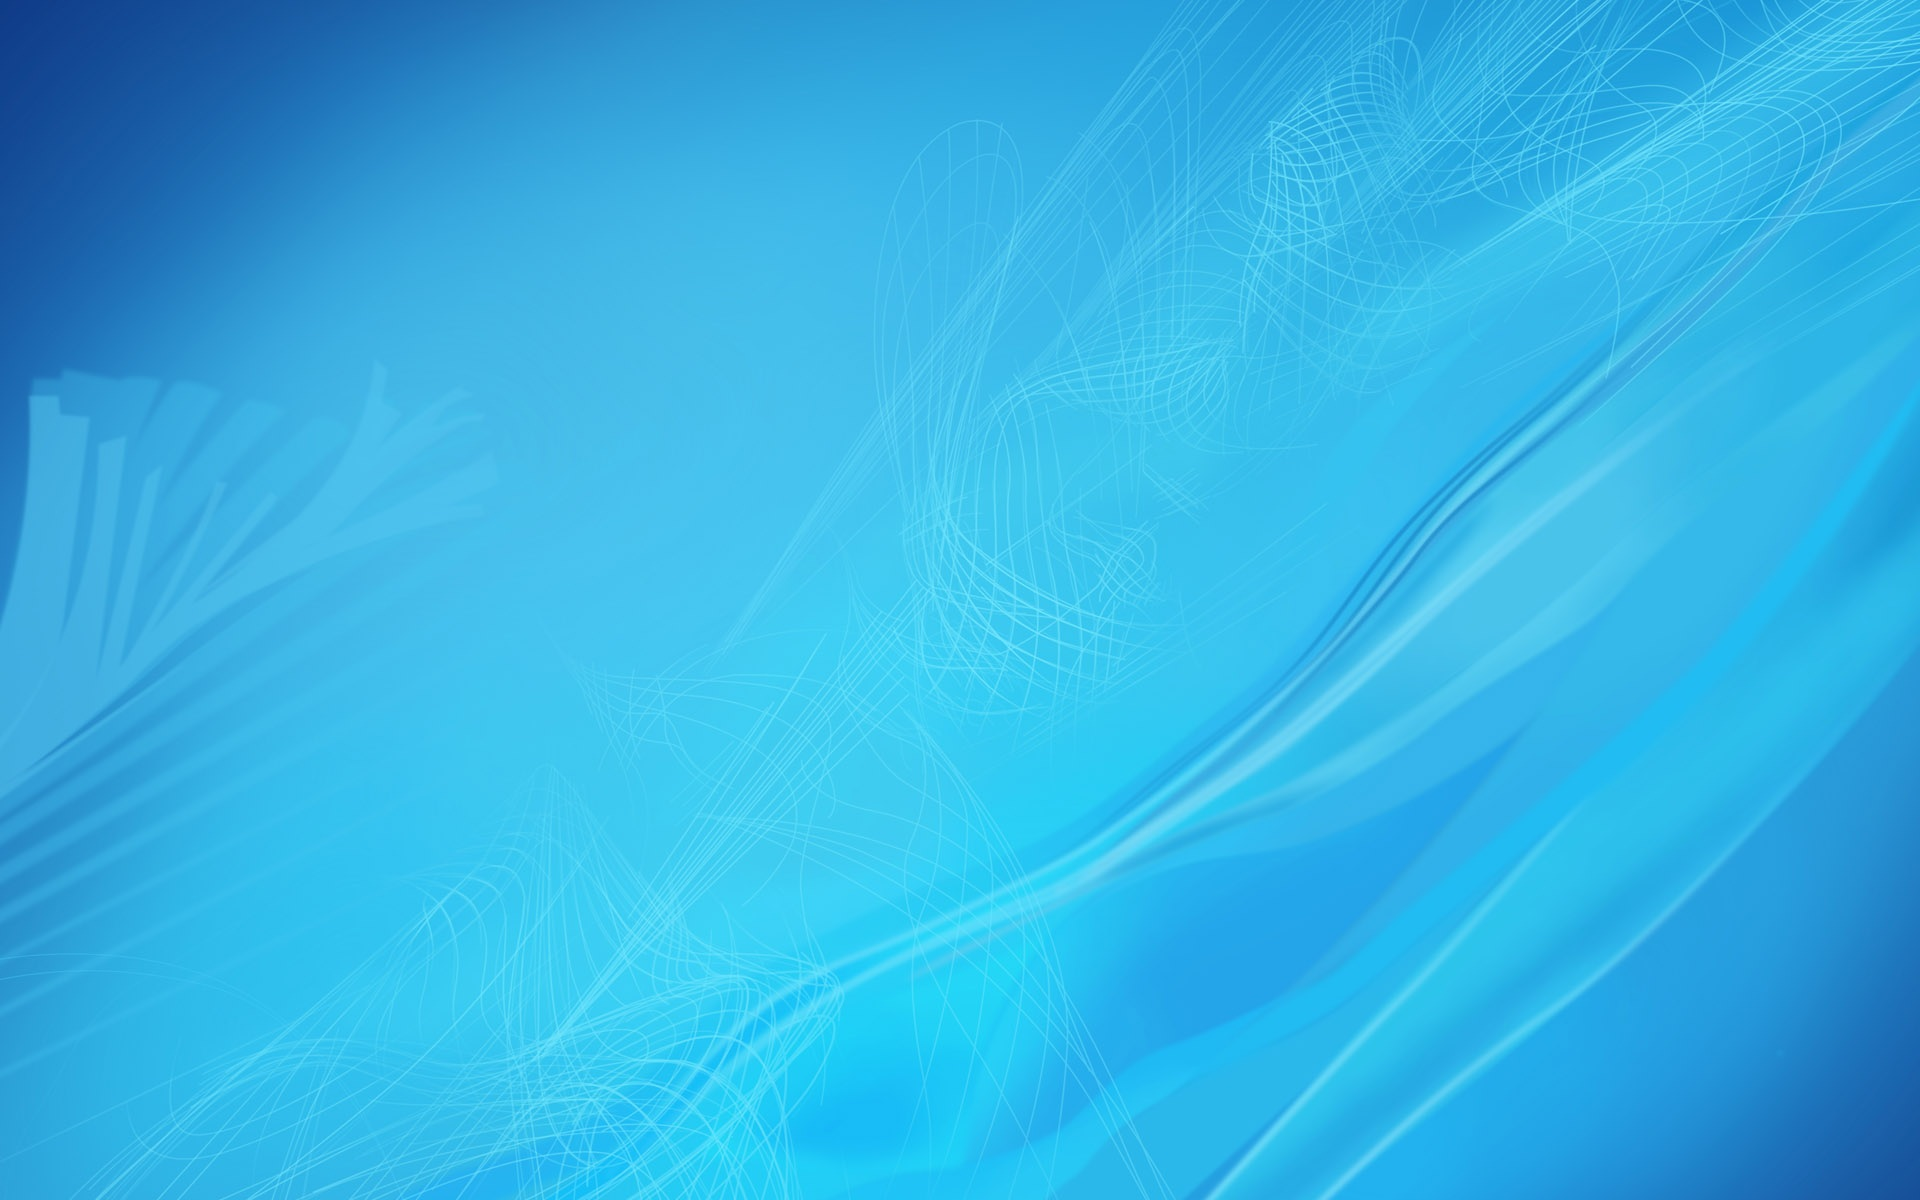 Blue Abstract Wallpapers HD Wallpapers 1920x1200